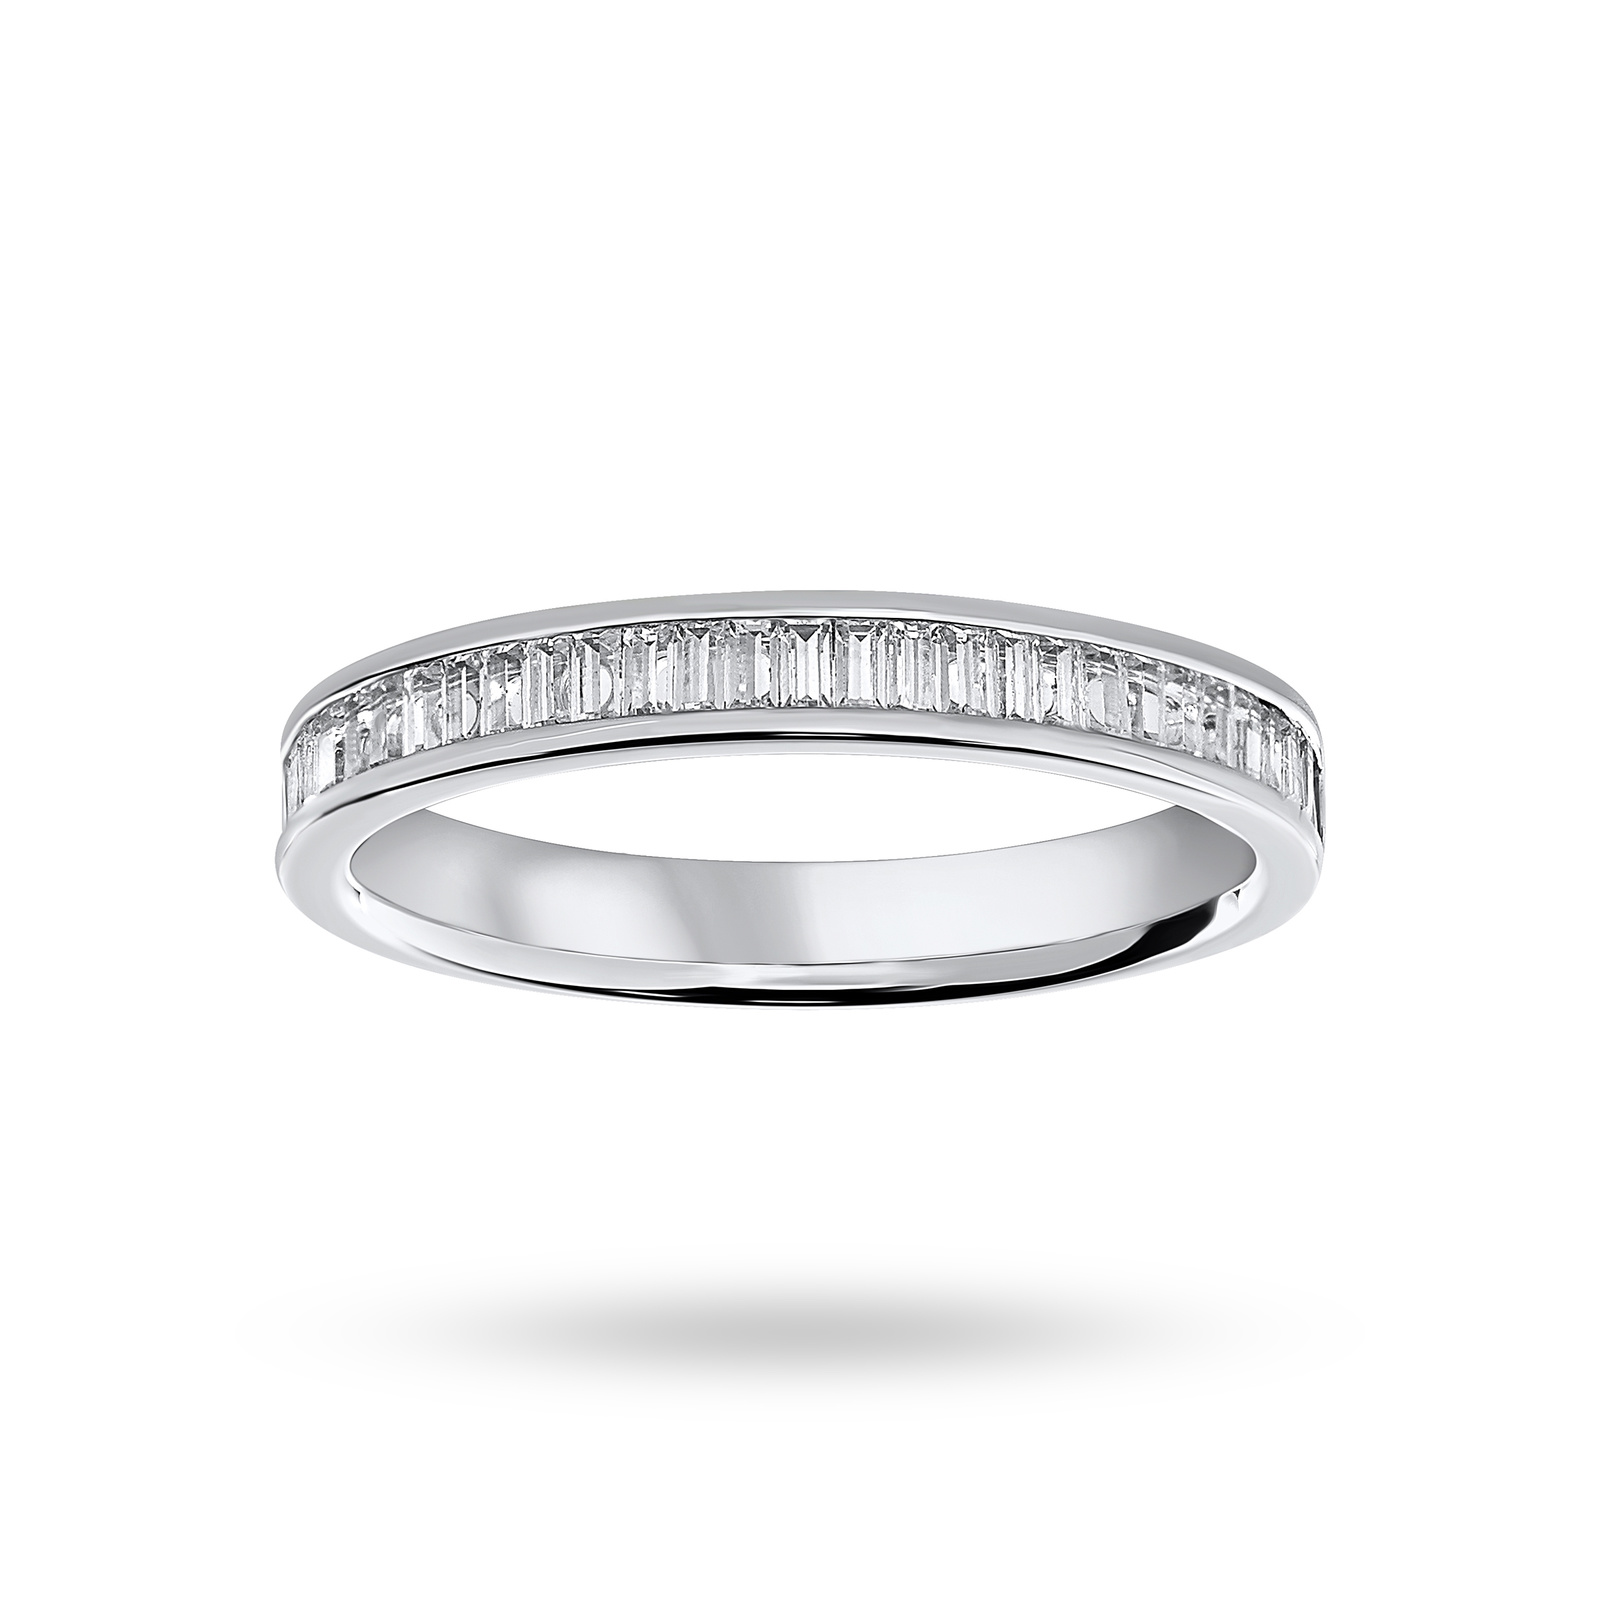 dia gold ring rings carat e marvelous product wantmydiamond jewellery round eternity certified band white diamond shape vs f